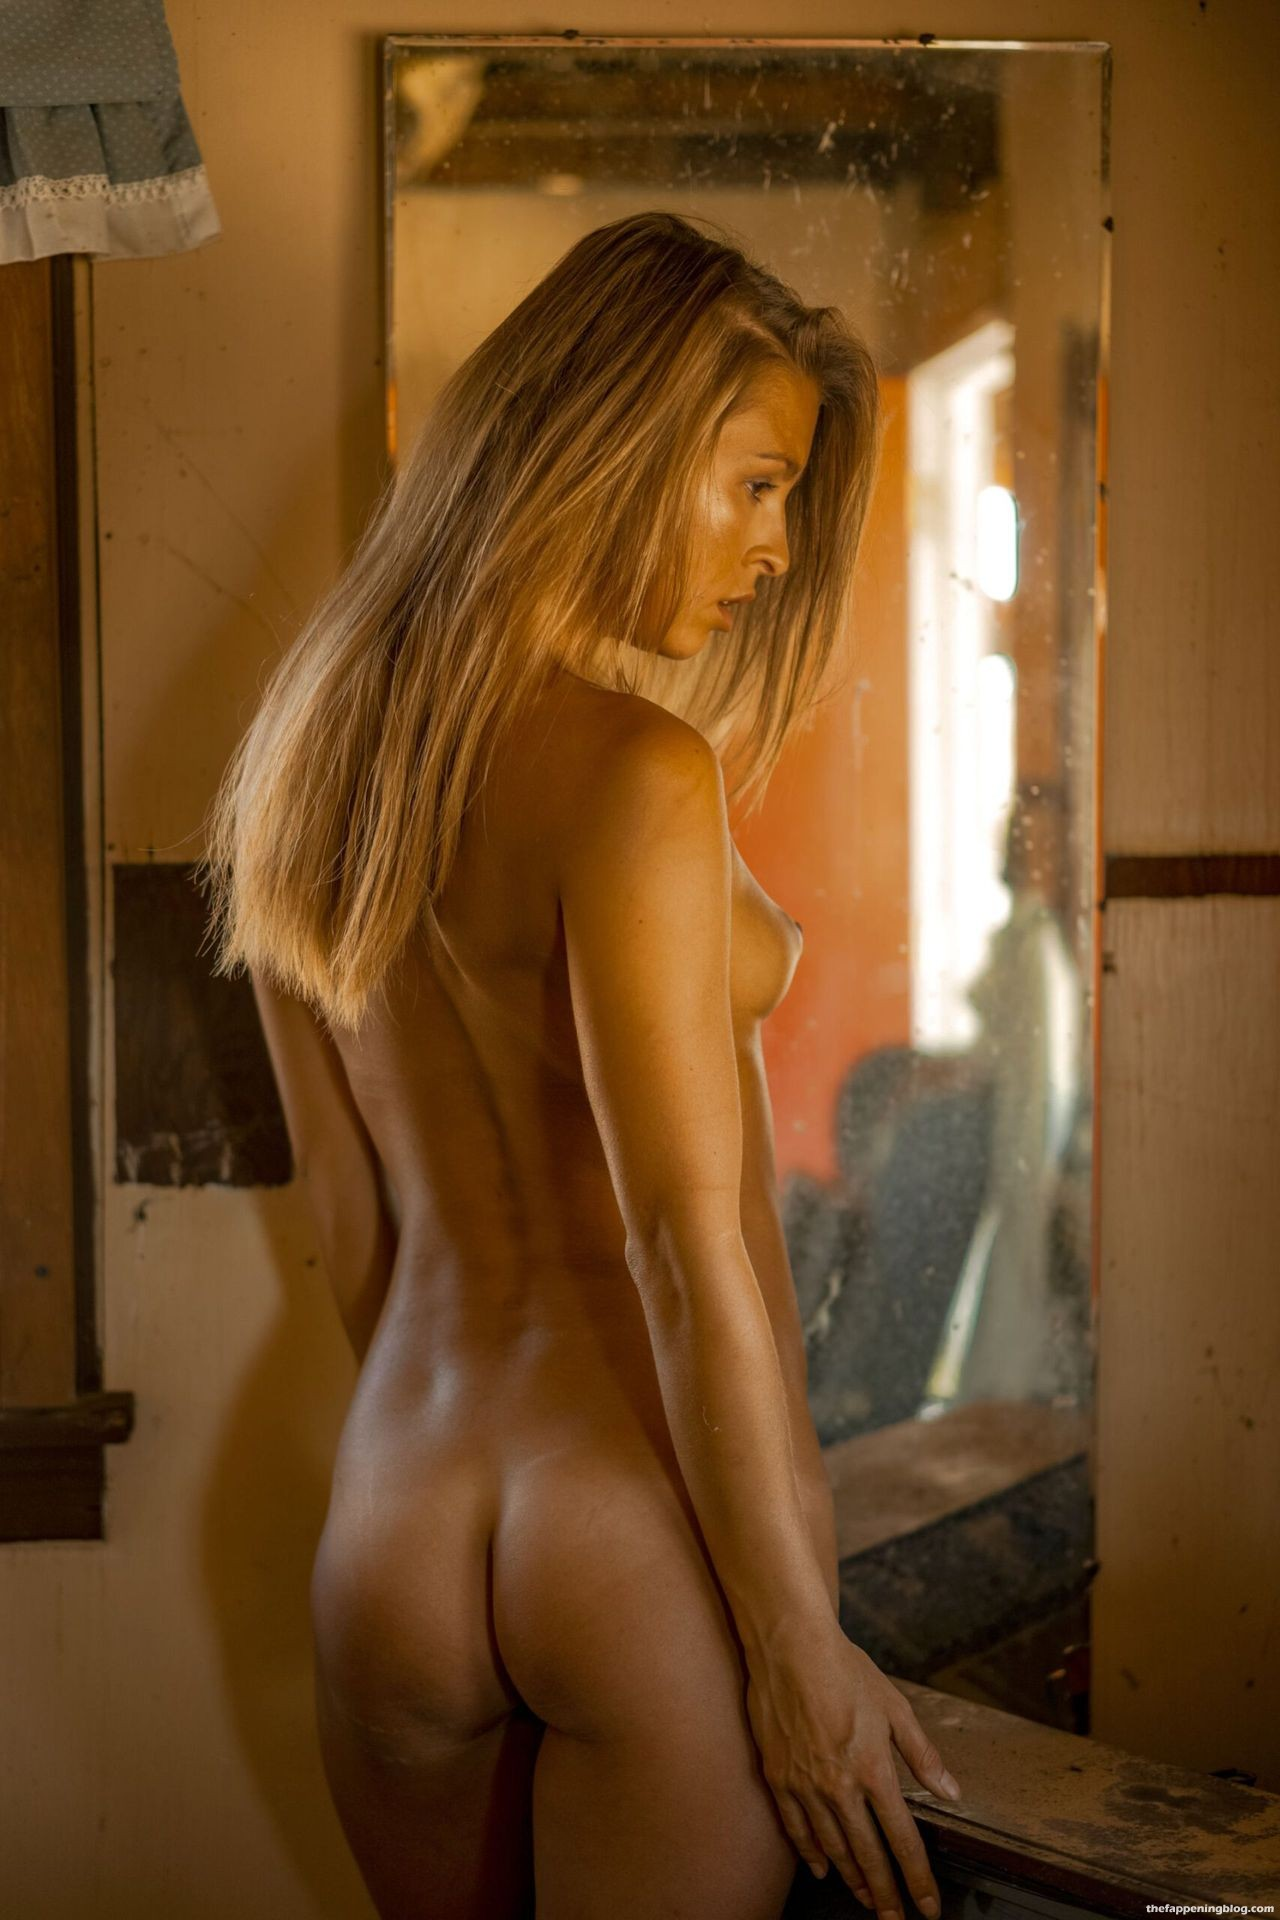 Marisa-Papen-Stunning-Naked-Body-11-scaled1-thefappeningblog.com_.jpg